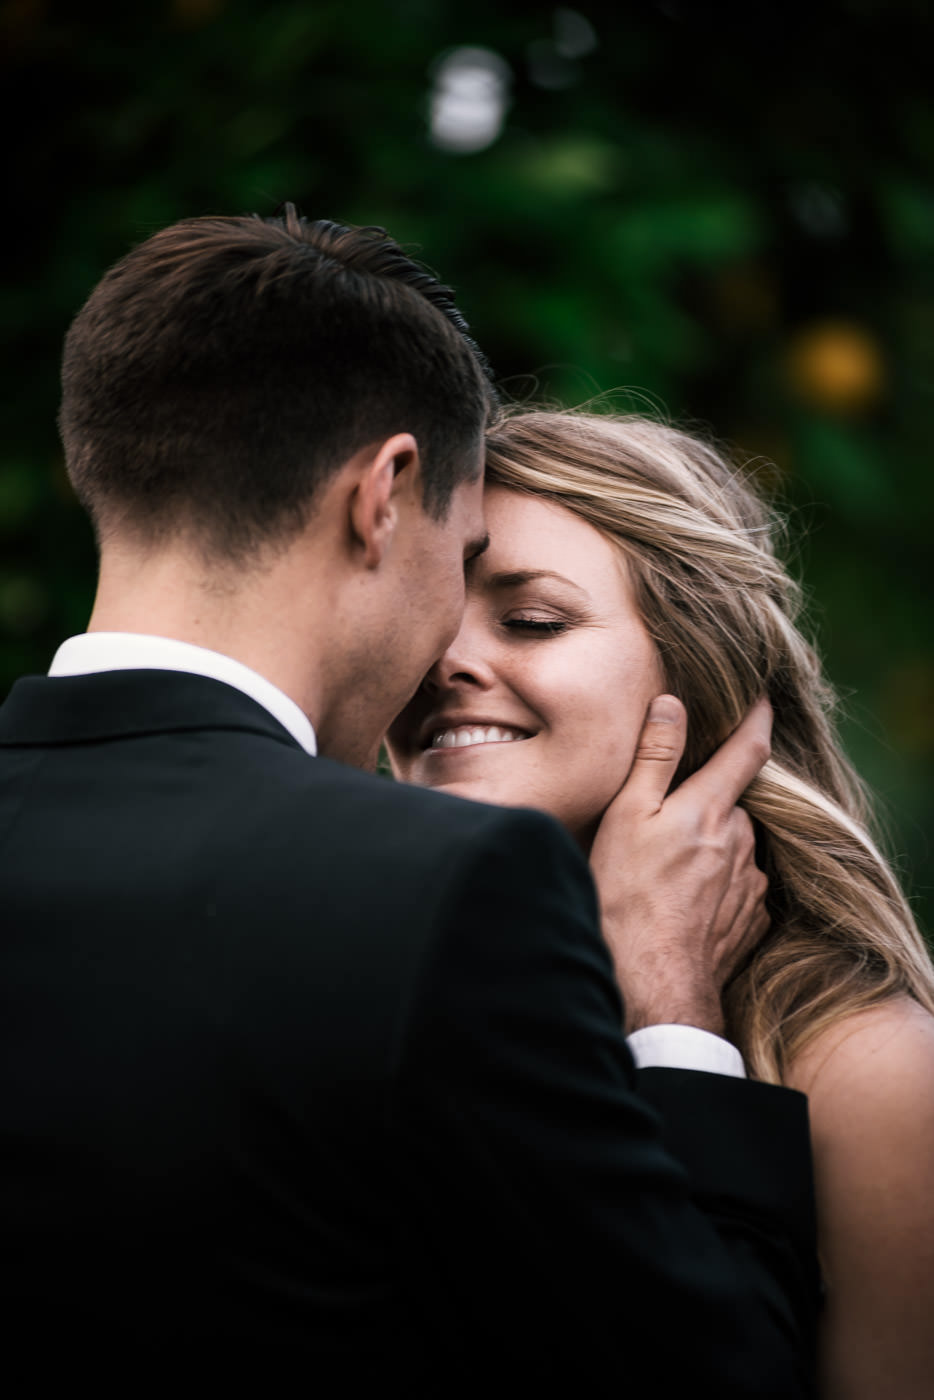 Couple gets in close and doesnt hold back loving on each other in the orchard after their wedding in Temecula. The bride is all smiles as her new husband gently pulls her in for a kiss.